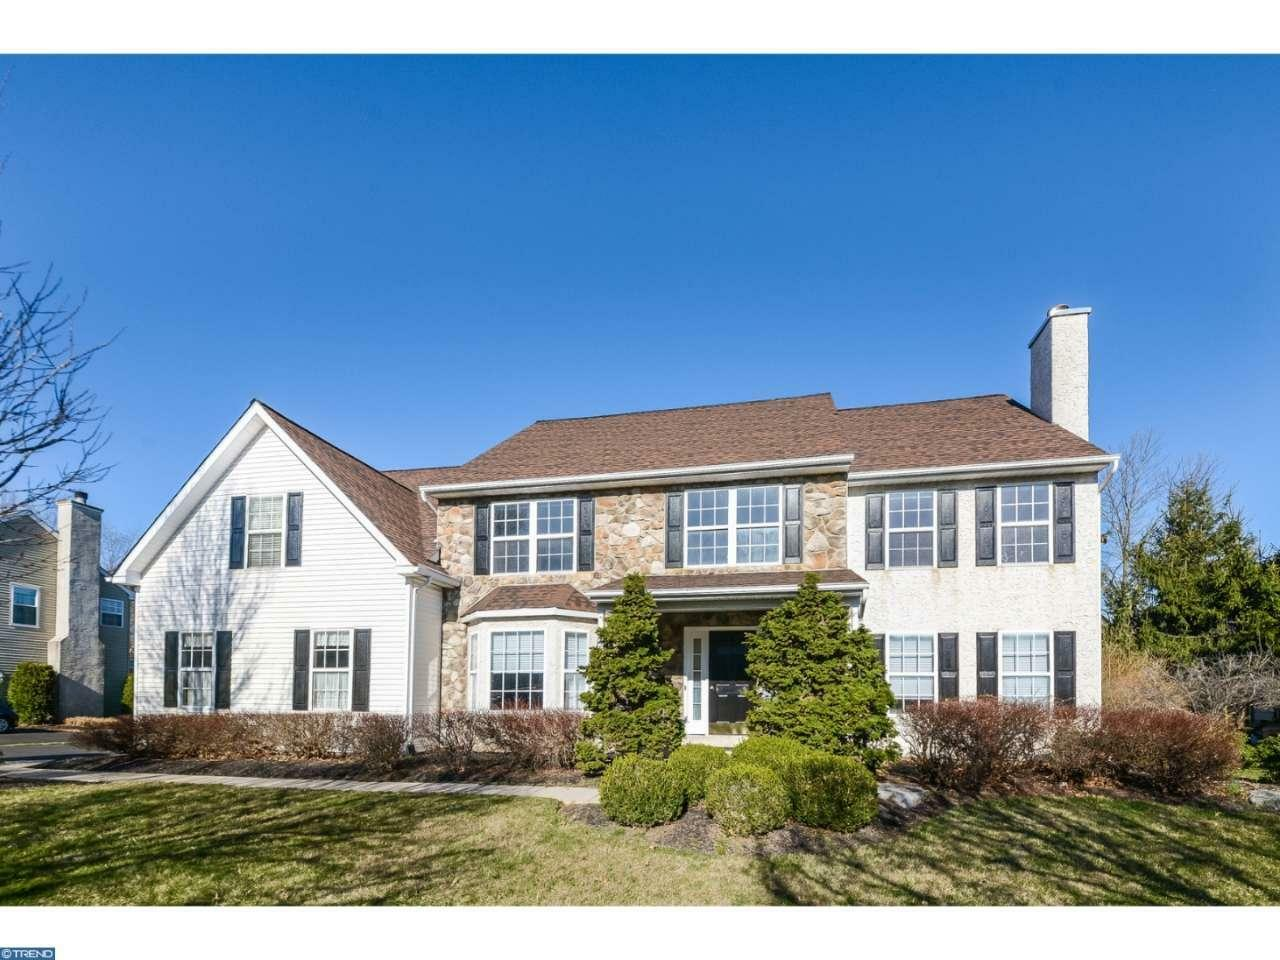 4282 Shedden Cir, Doylestown, PA - USA (photo 1)